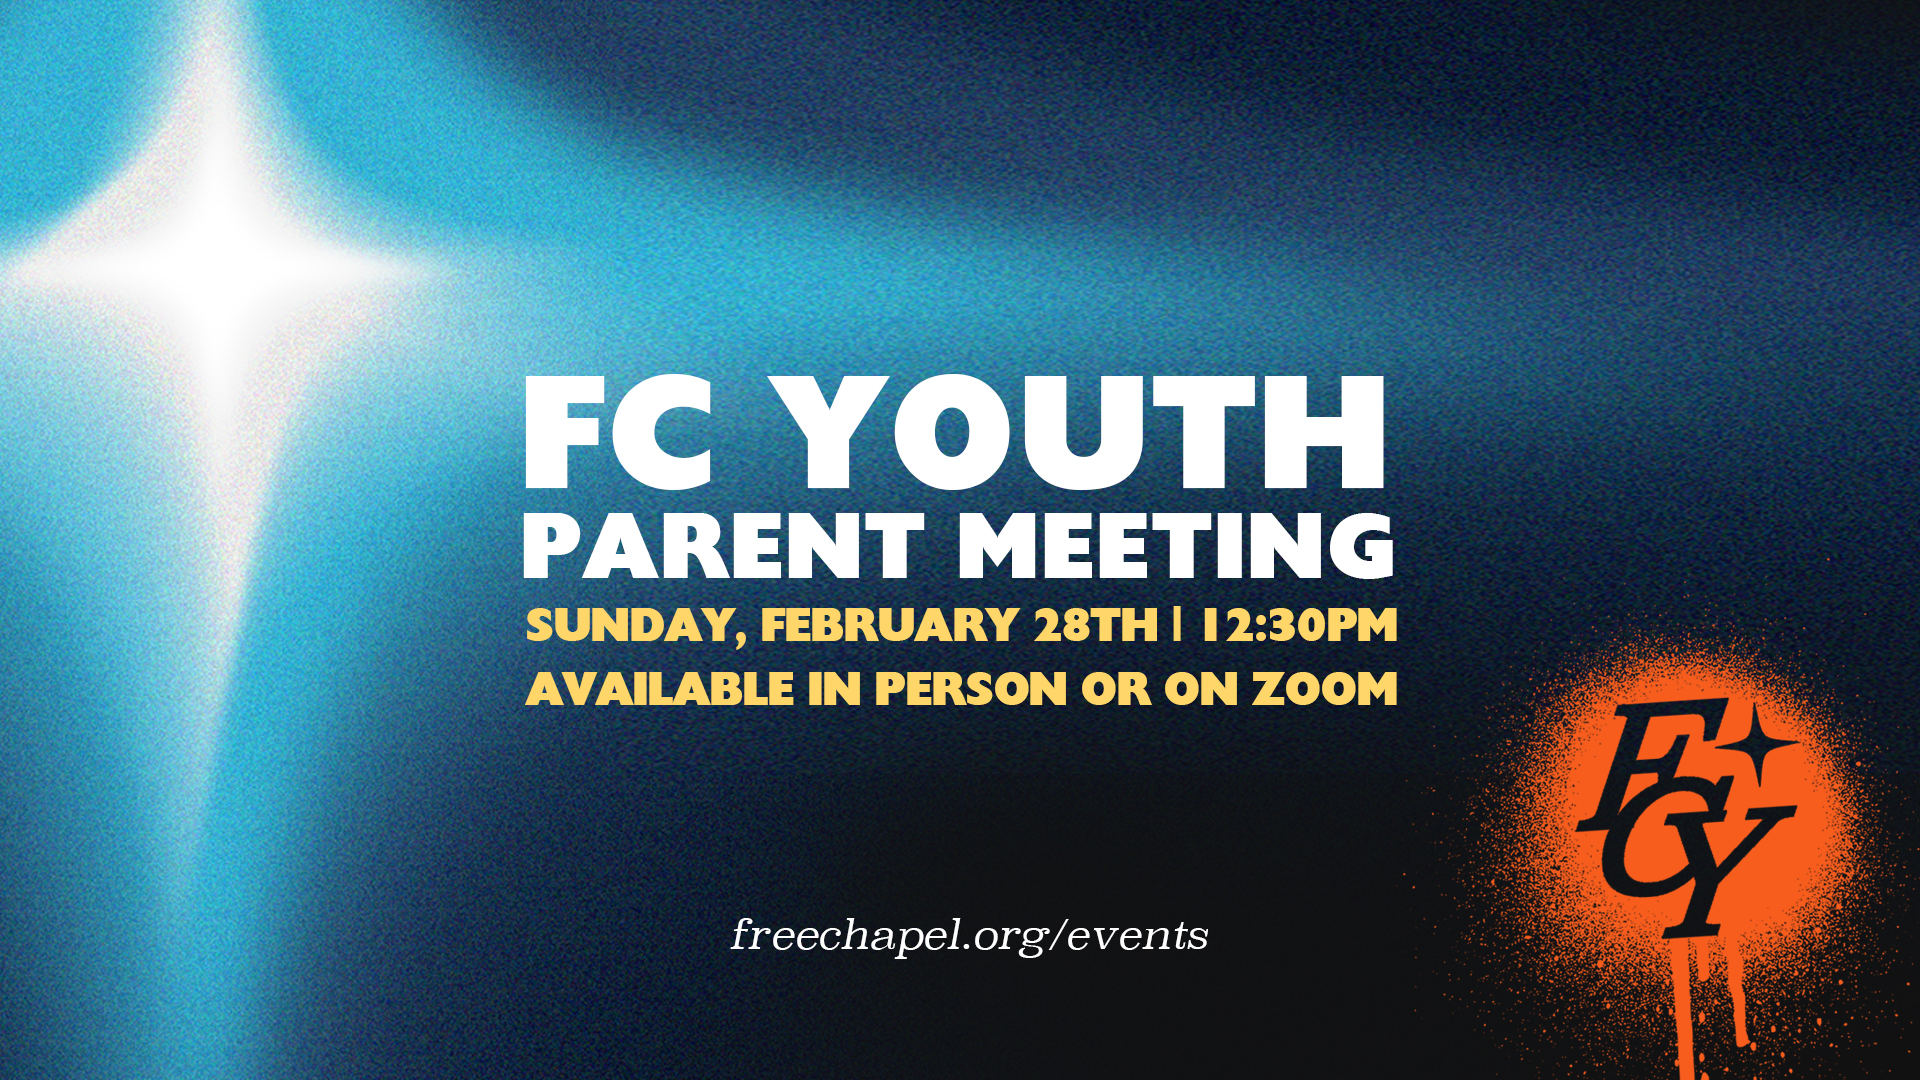 FC Youth Parent Meeting at the Gwinnett campus